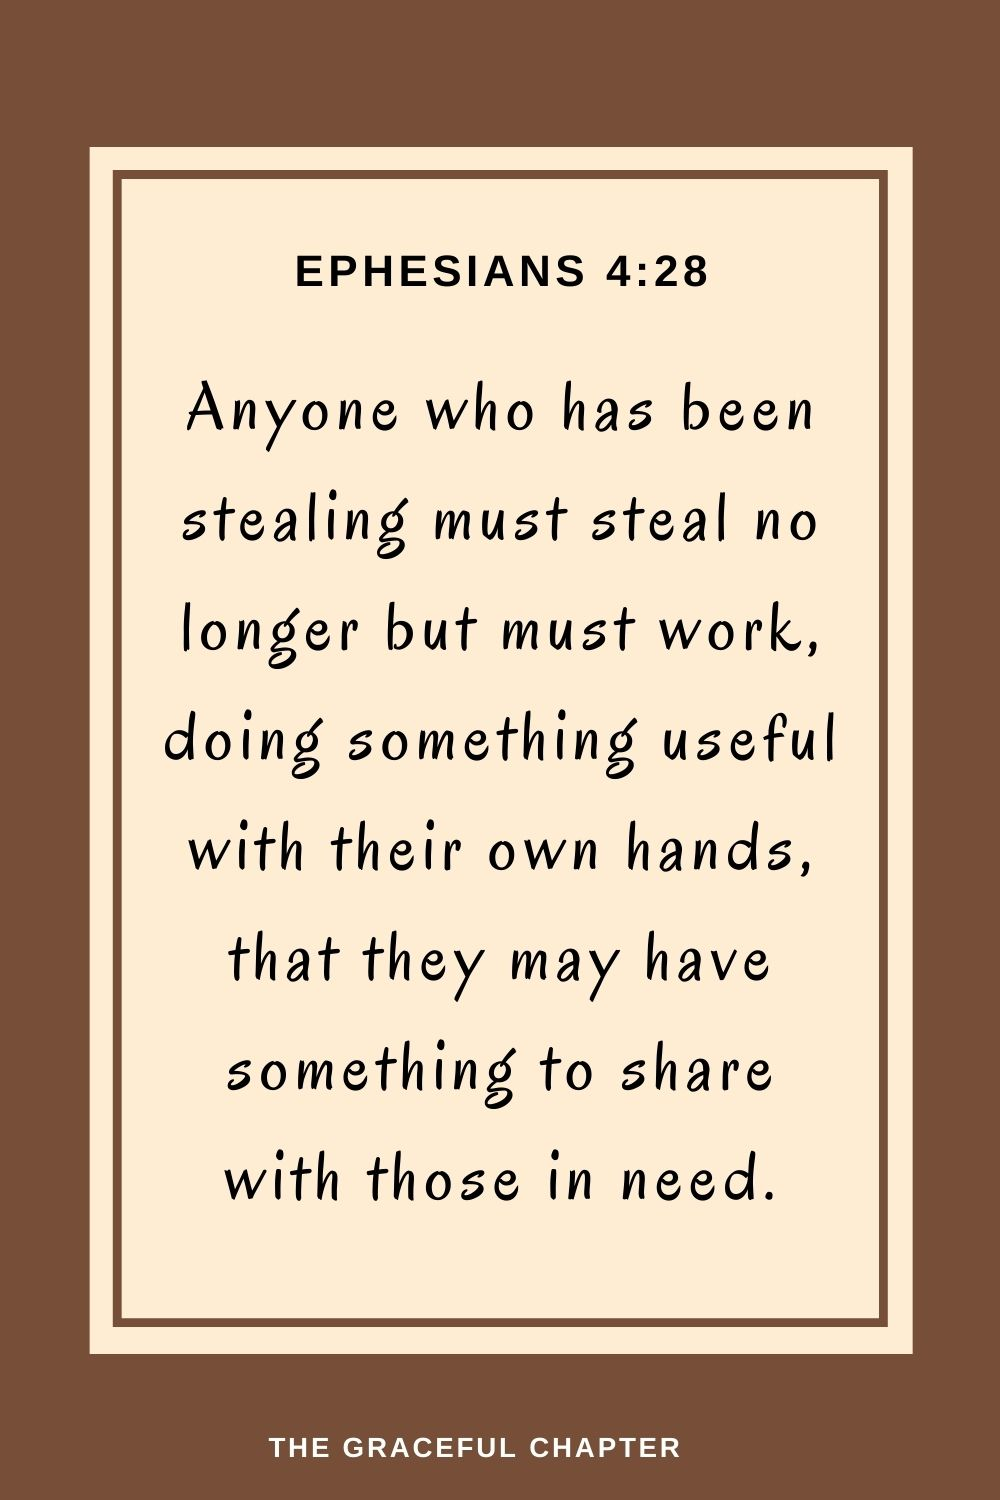 Anyone who has been stealing must steal no longer but must work,doing something useful with their own hands,that they may have something to share with those in need. Ephesians 4:28